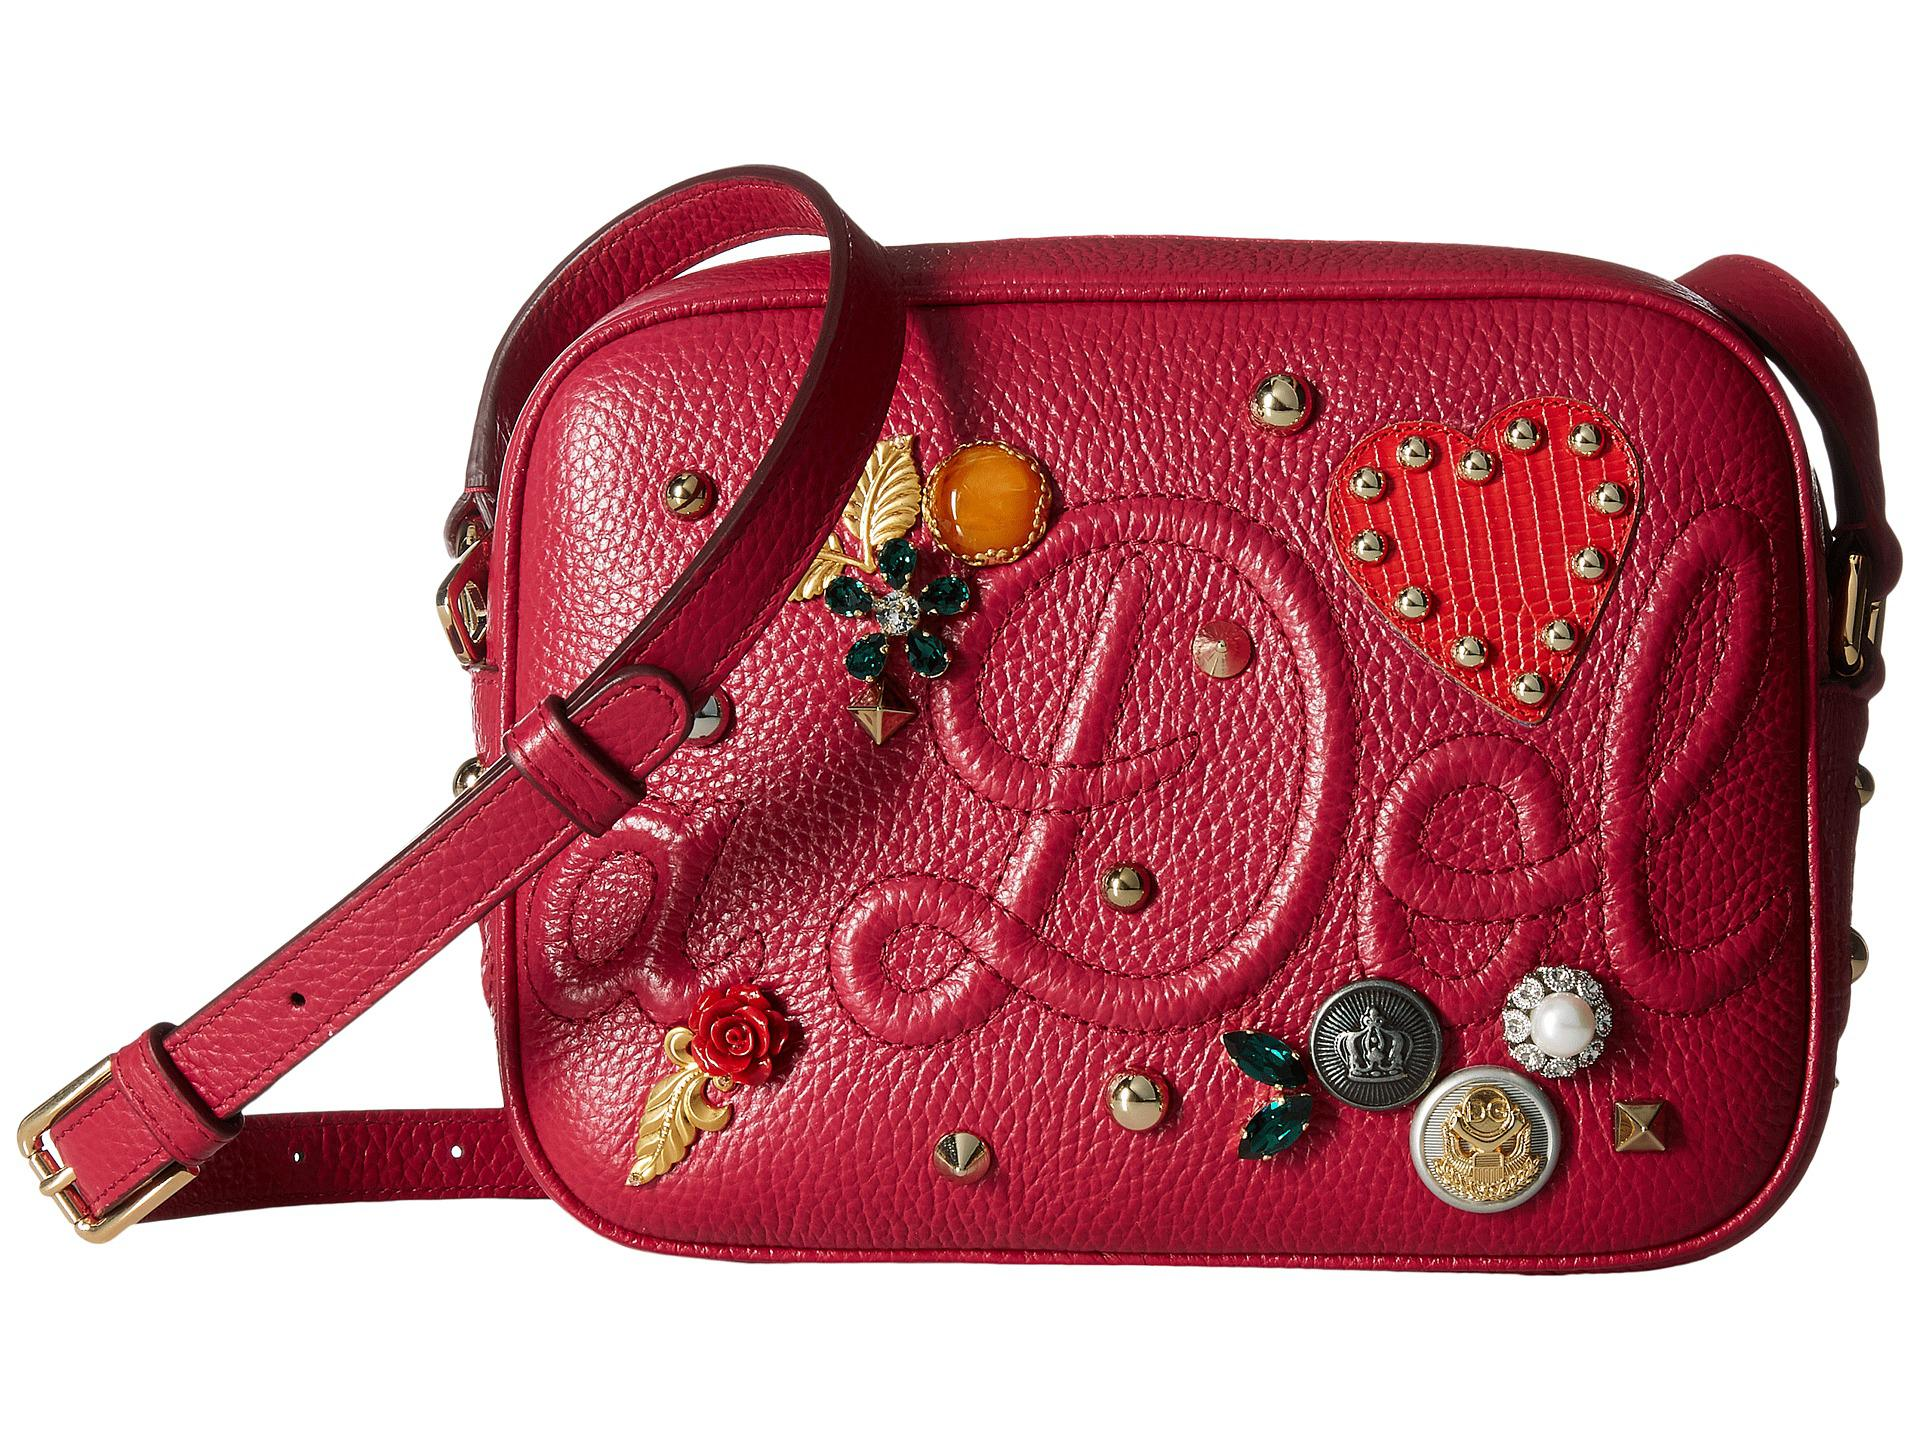 d04a16decf1d Lyst - Dolce   Gabbana Leather Dolce Soft Glamour Bag With ...